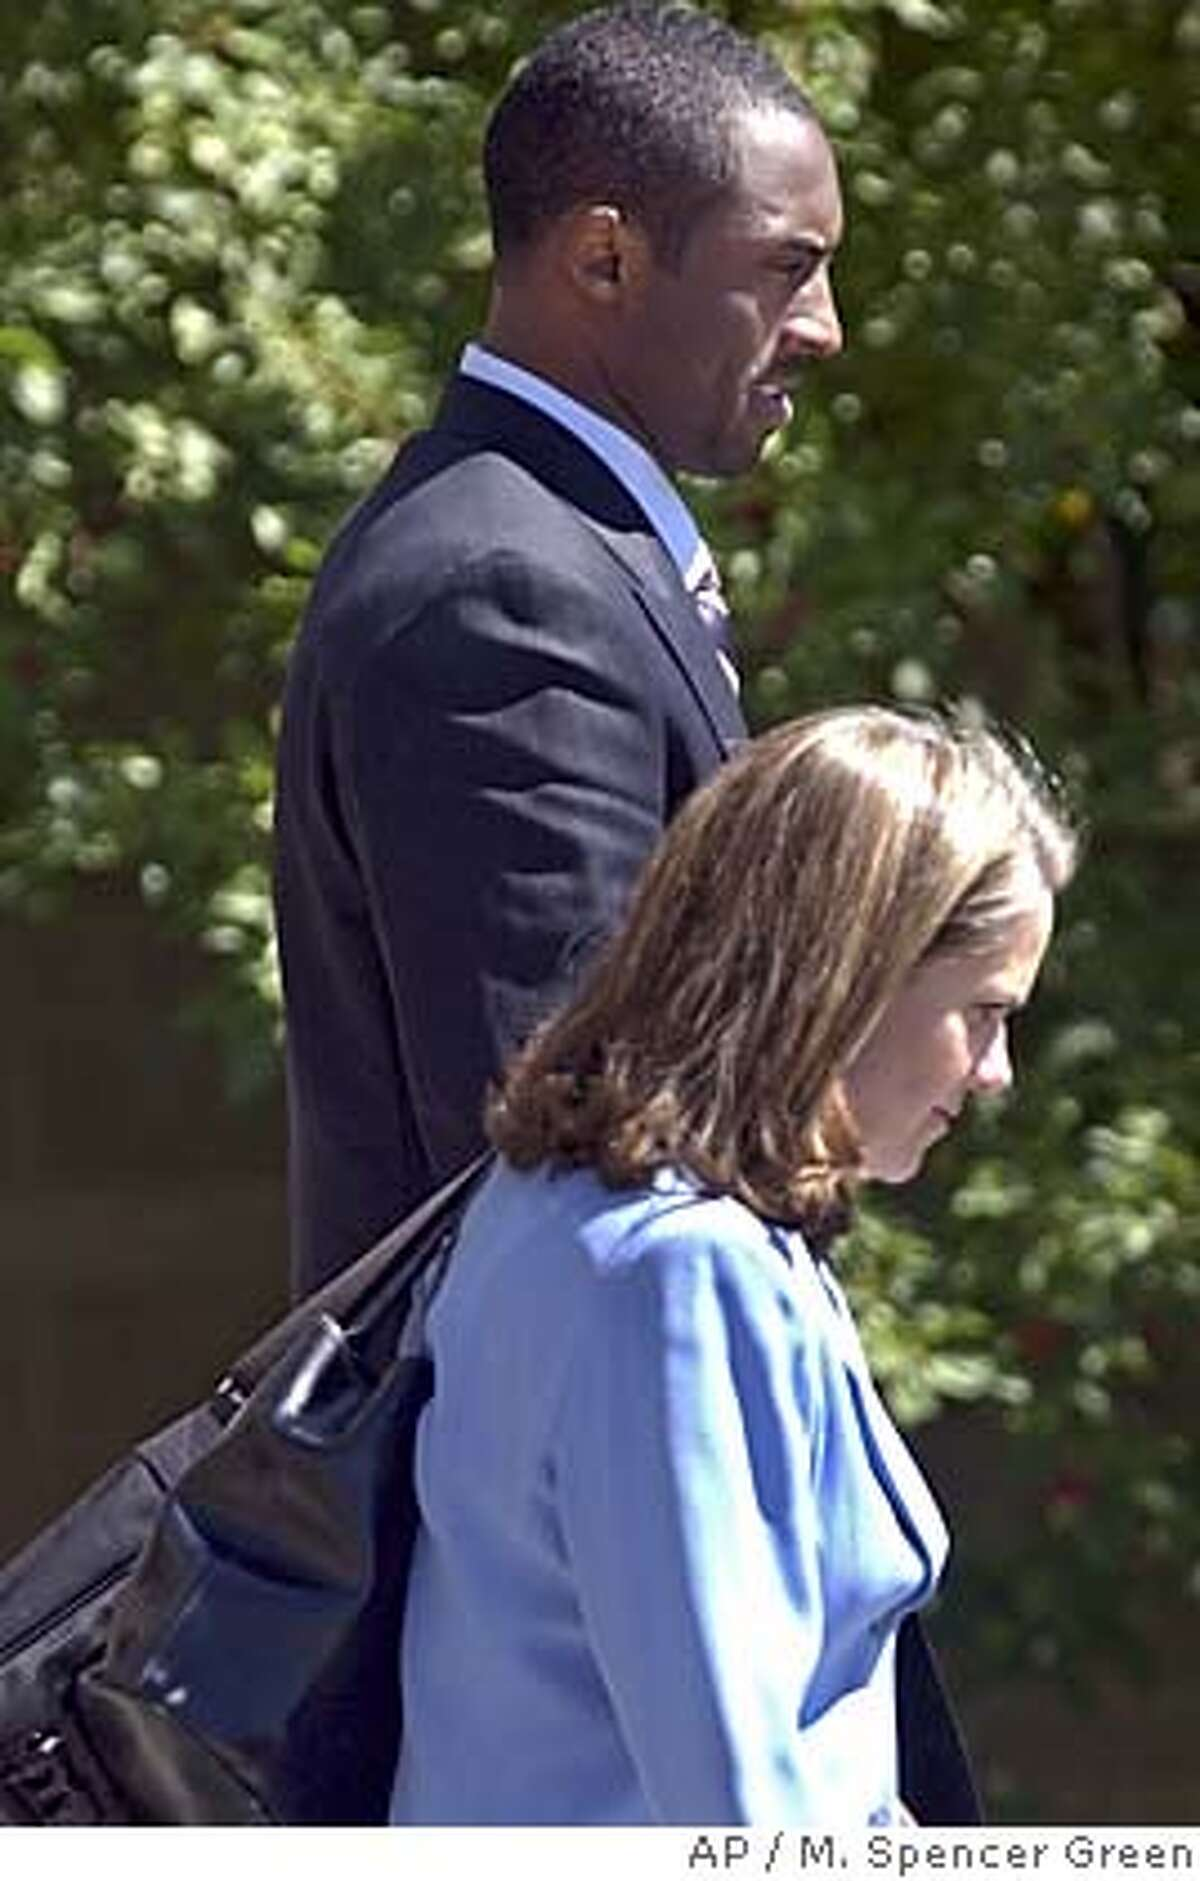 L.A. Lakers' star Kobe Bryant talks with his attorney Pamela Mackey as he leaves court at the Justice Center Wednesday, Sept. 1 2004 in Eagle, Colo. after a half day in the jury selection phase of his sexual assault trial. (AP Photo/M. Spencer Green)